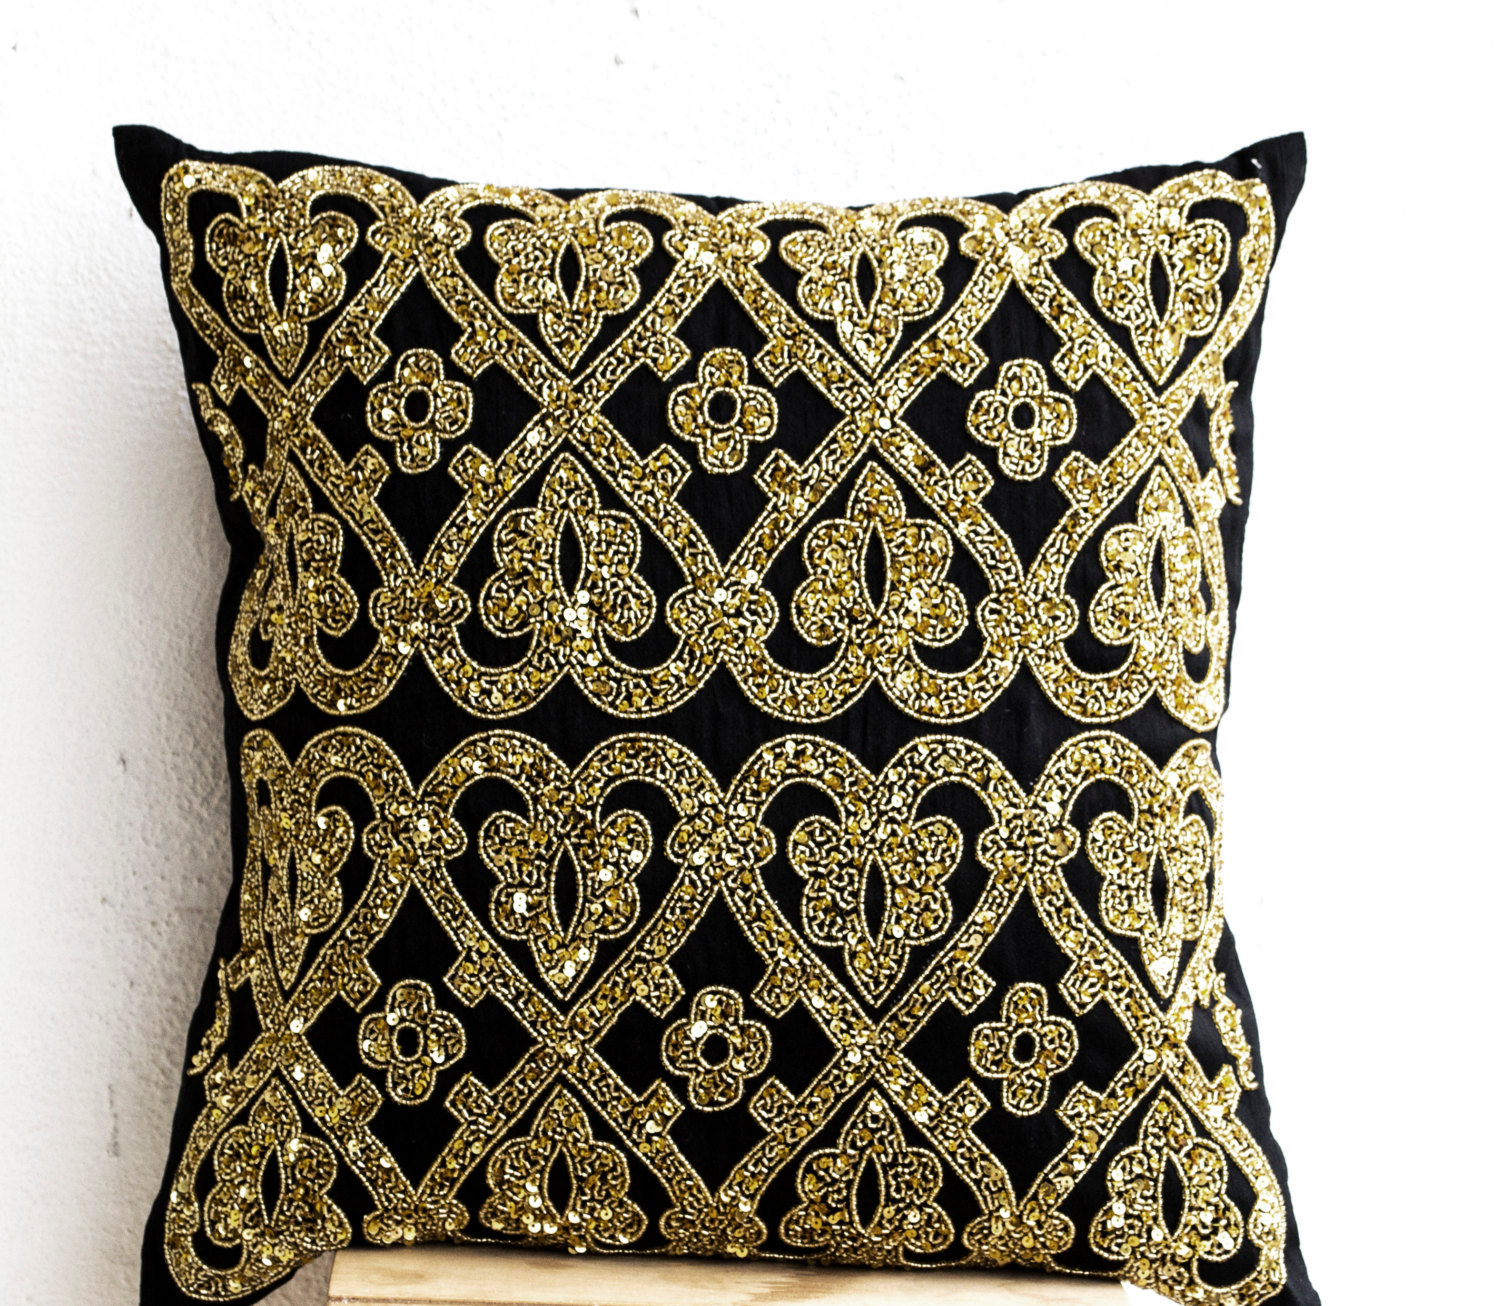 Decorative Throw Pillow Cover Black Gold Sequin Pillows Cushion Gold Pillow Gift - Pillows